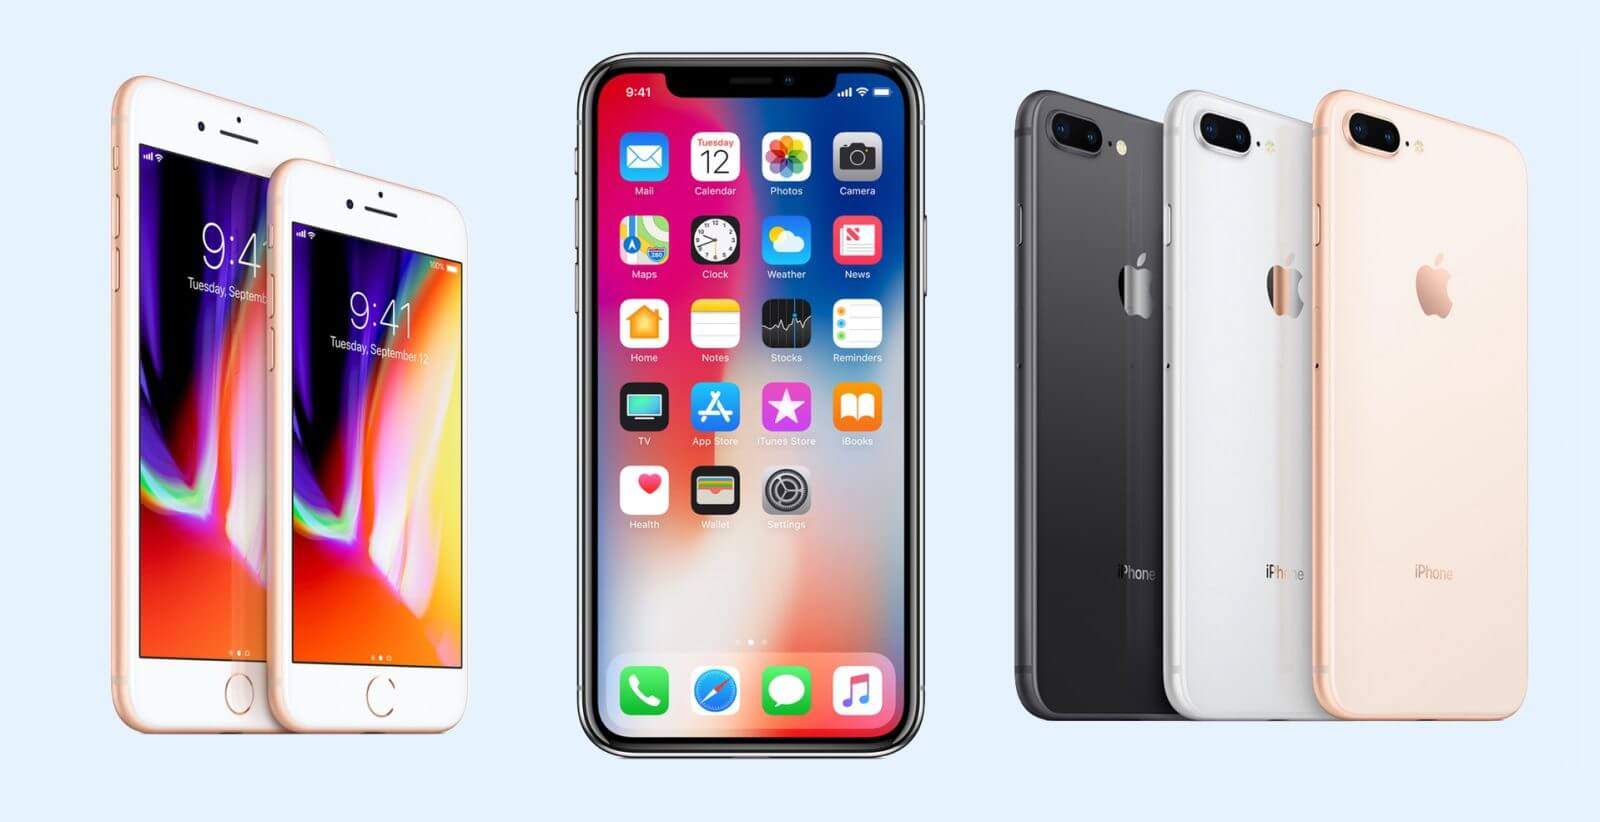 iPhone X- iPhone zilsesi, iPhone X zil sesi